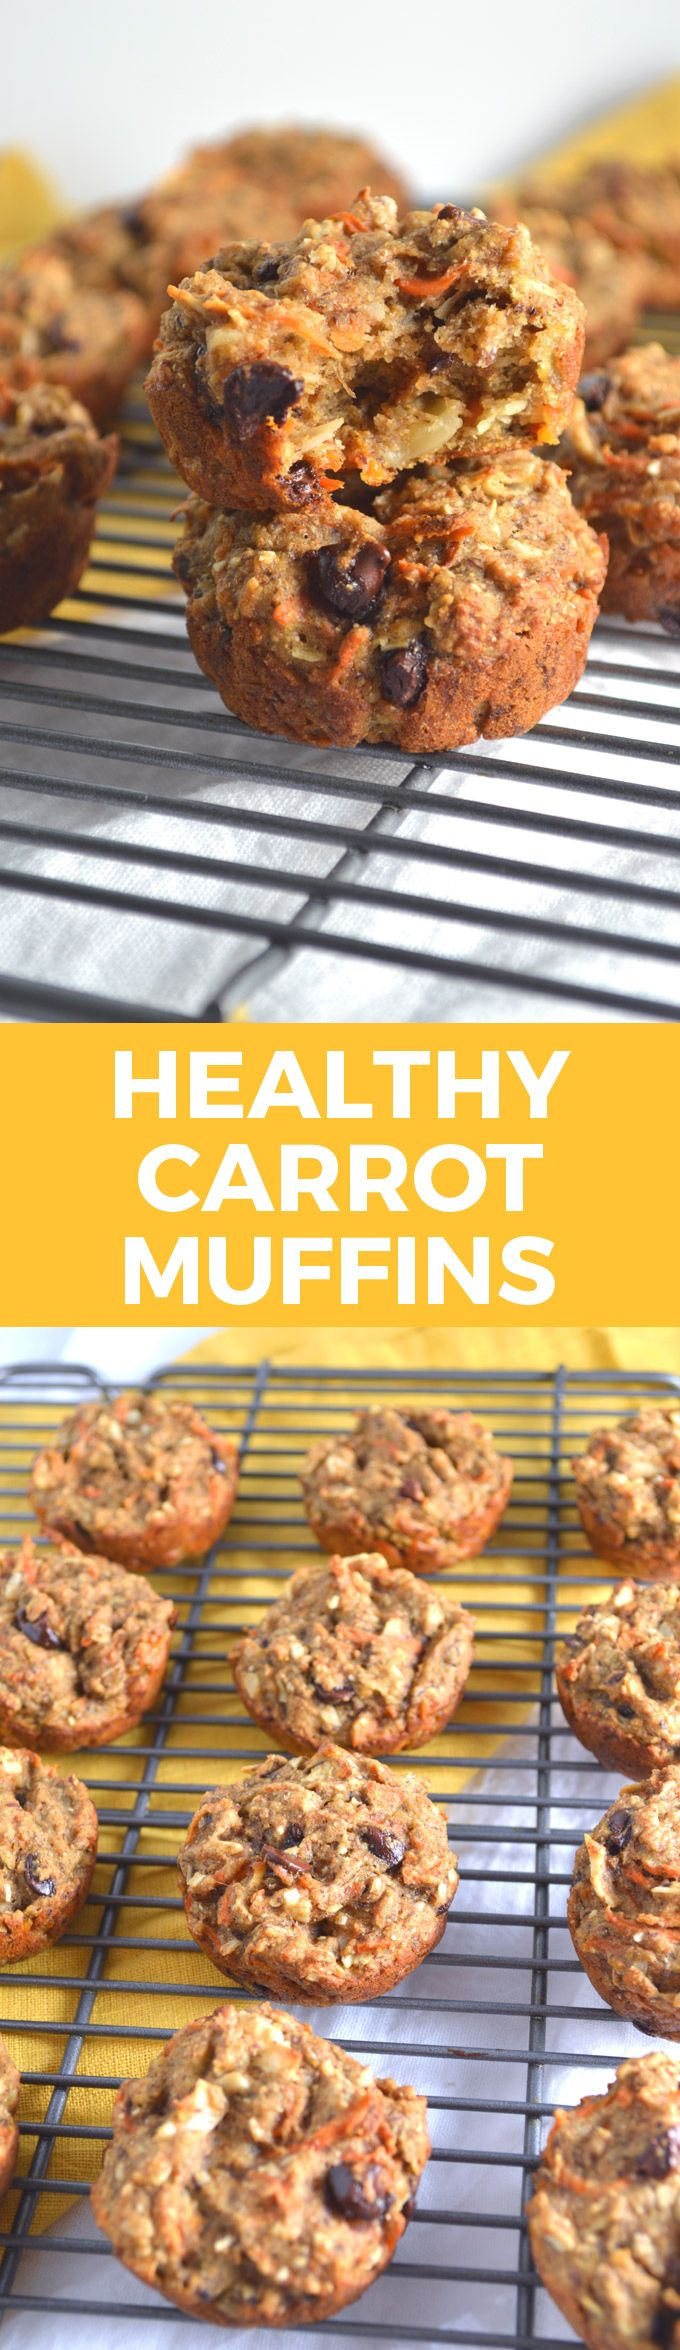 muffins carrot chocolate chip muffins healthy banana carrot muffins ...